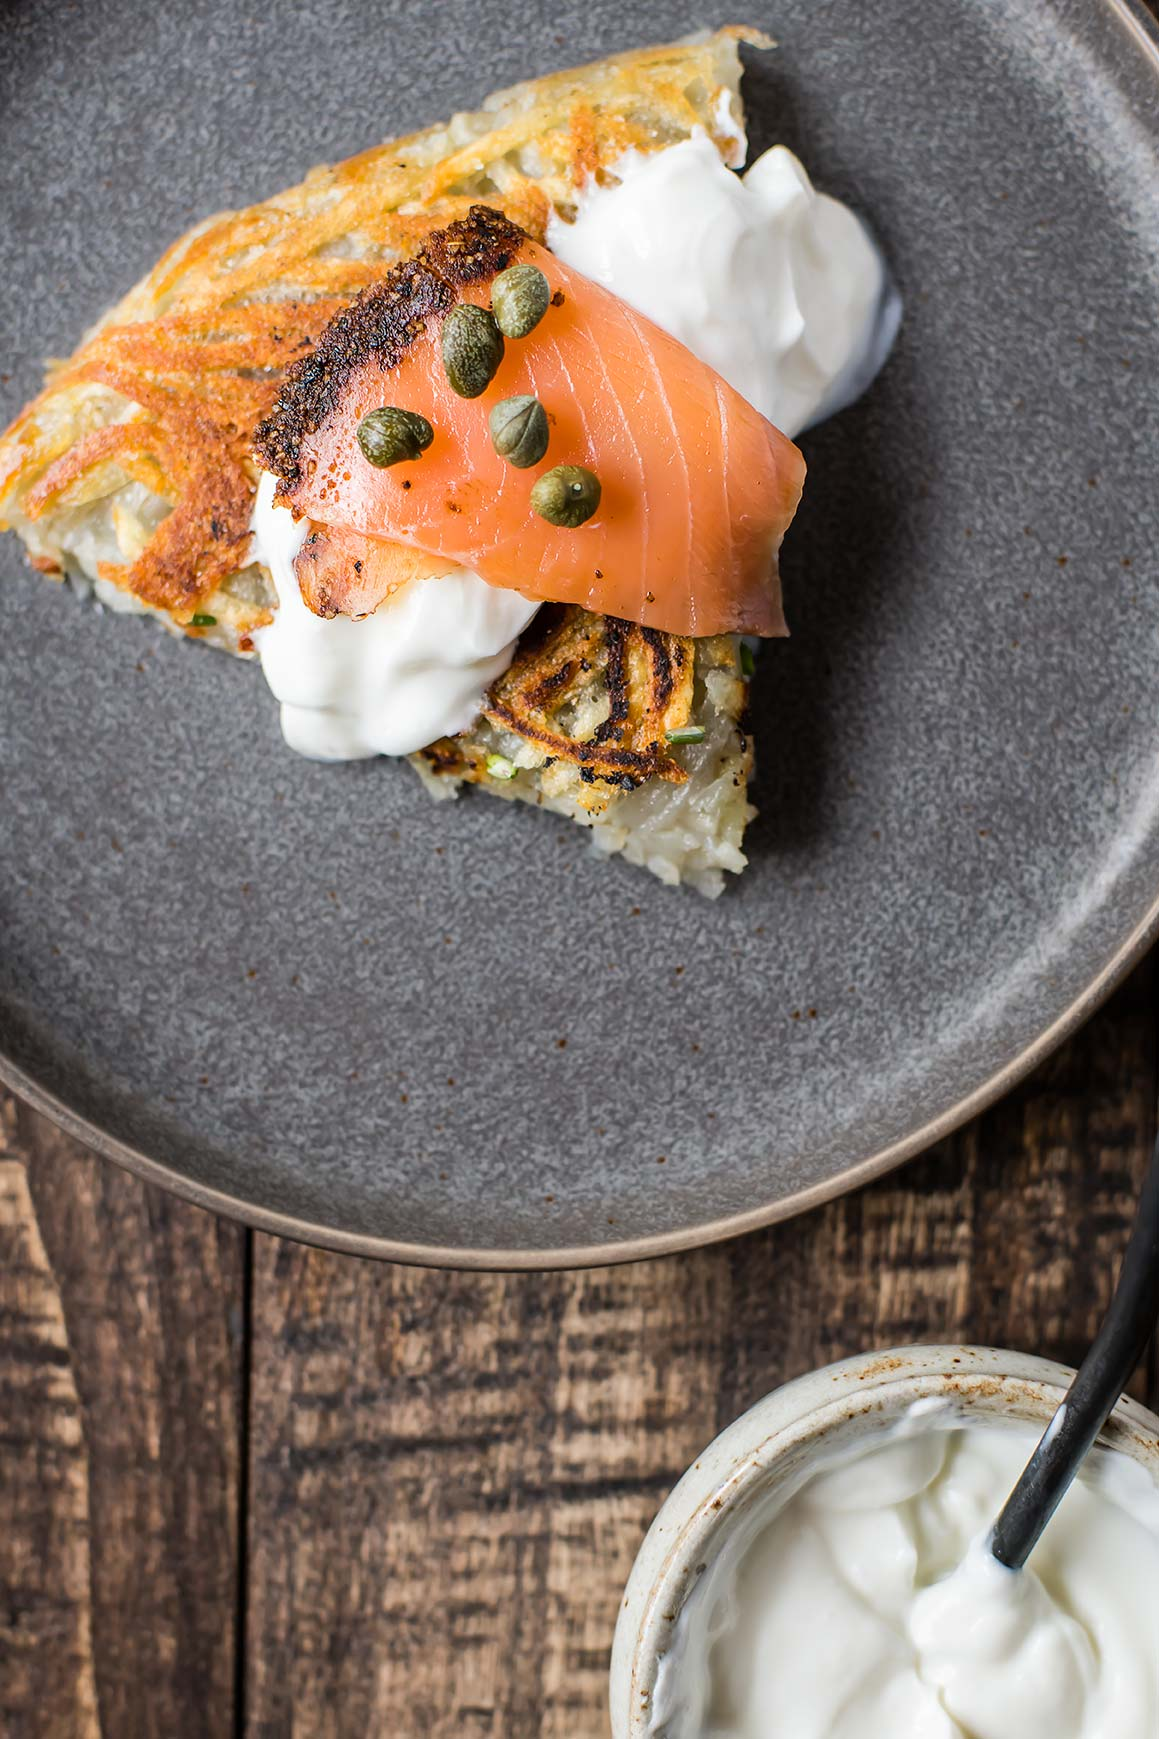 Potato Galette with Lox (AKA Giant Latke)